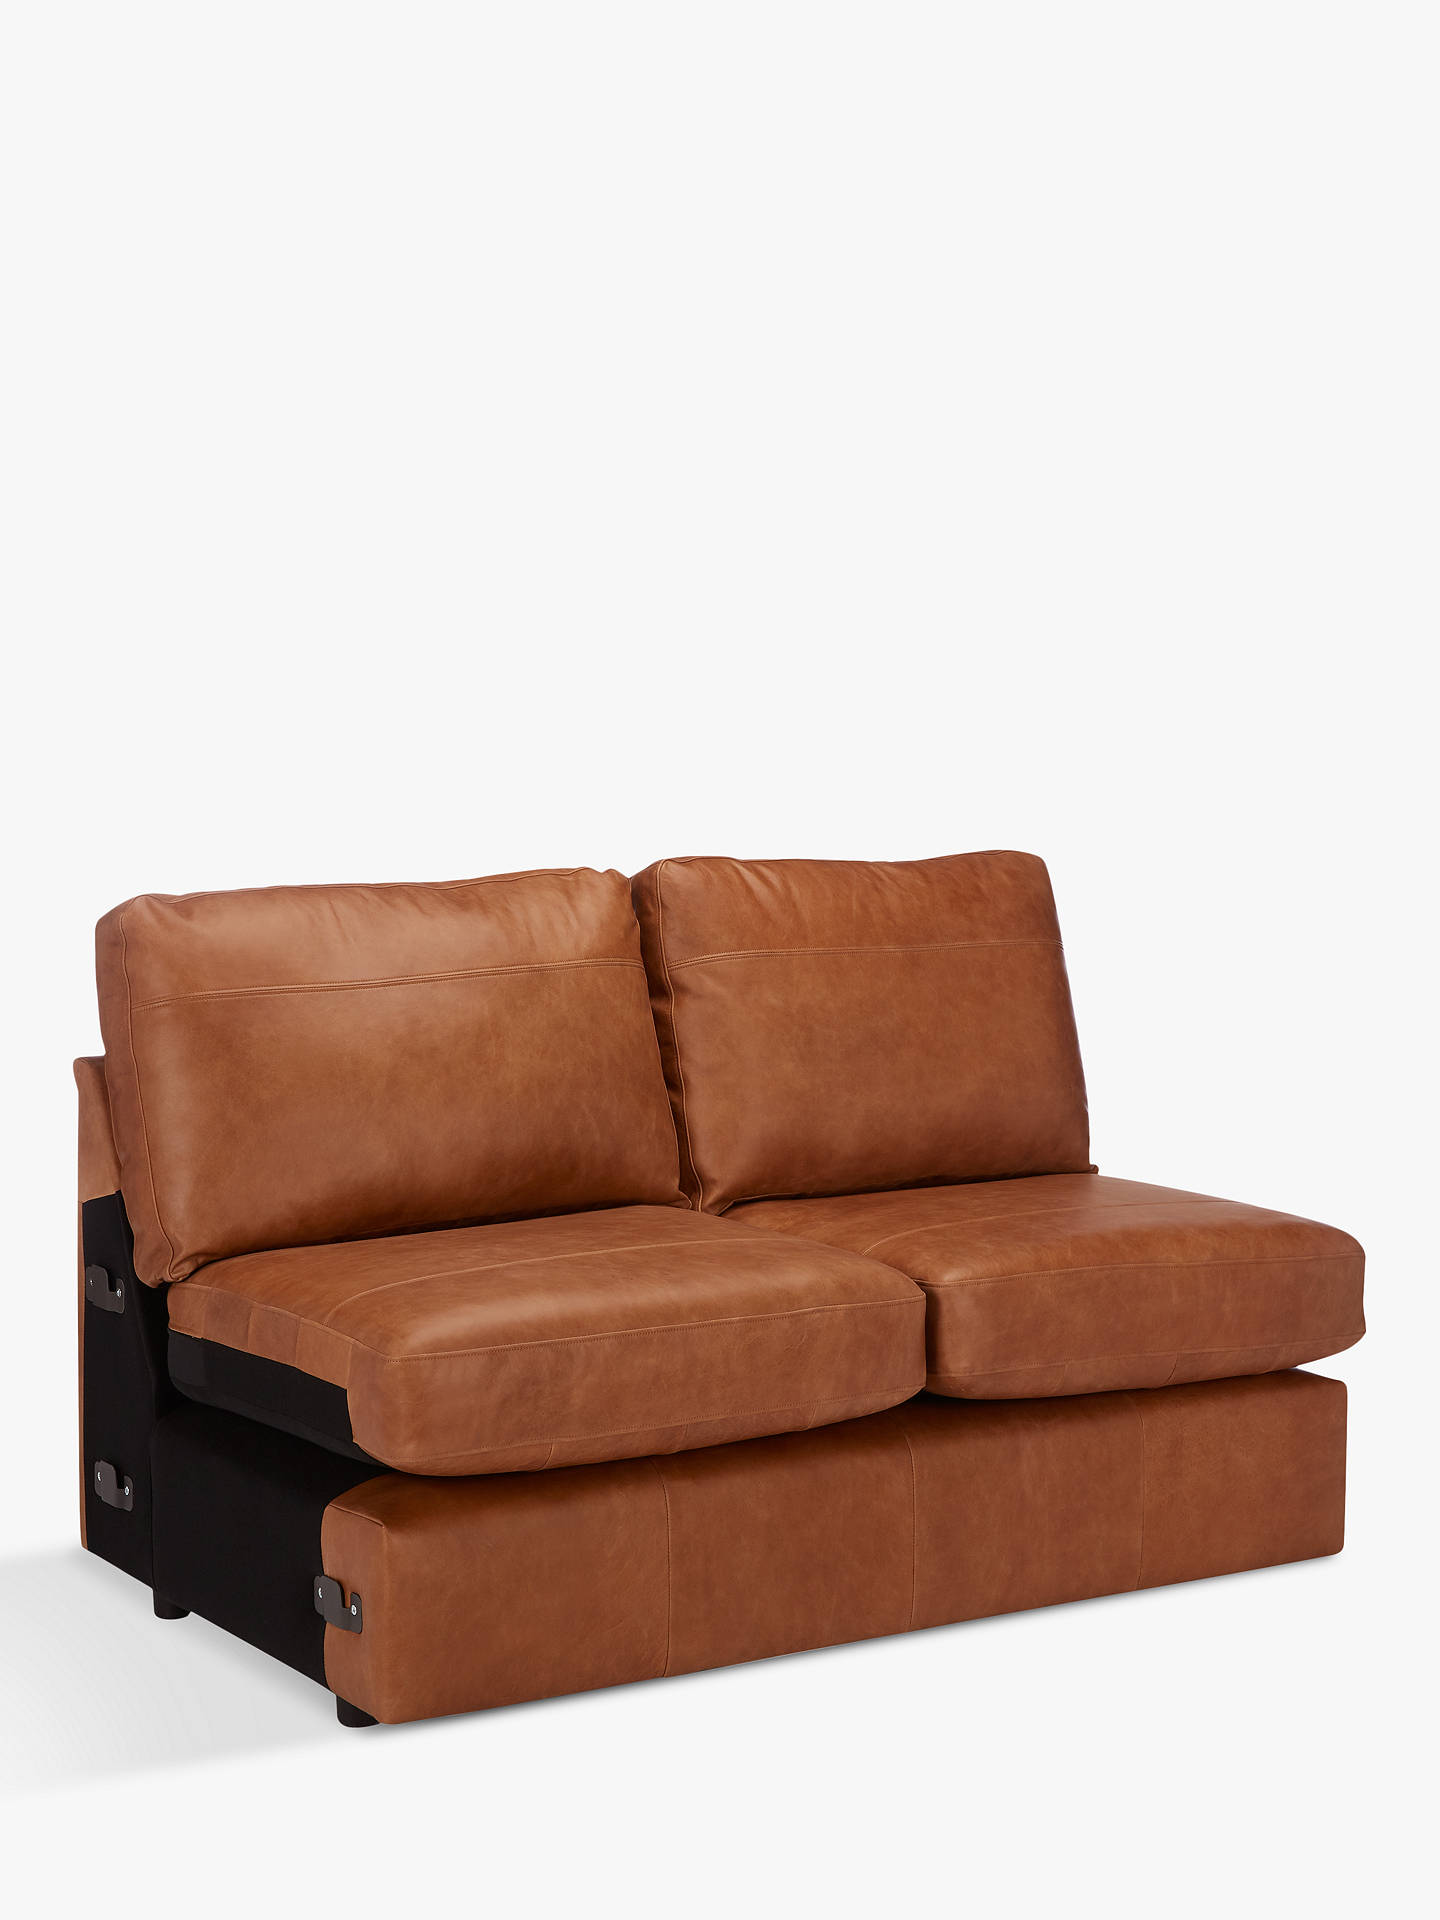 John Lewis Partners Oliver Leather Modular Small 2 Seater Armless Sofa Unit Er Cuccino